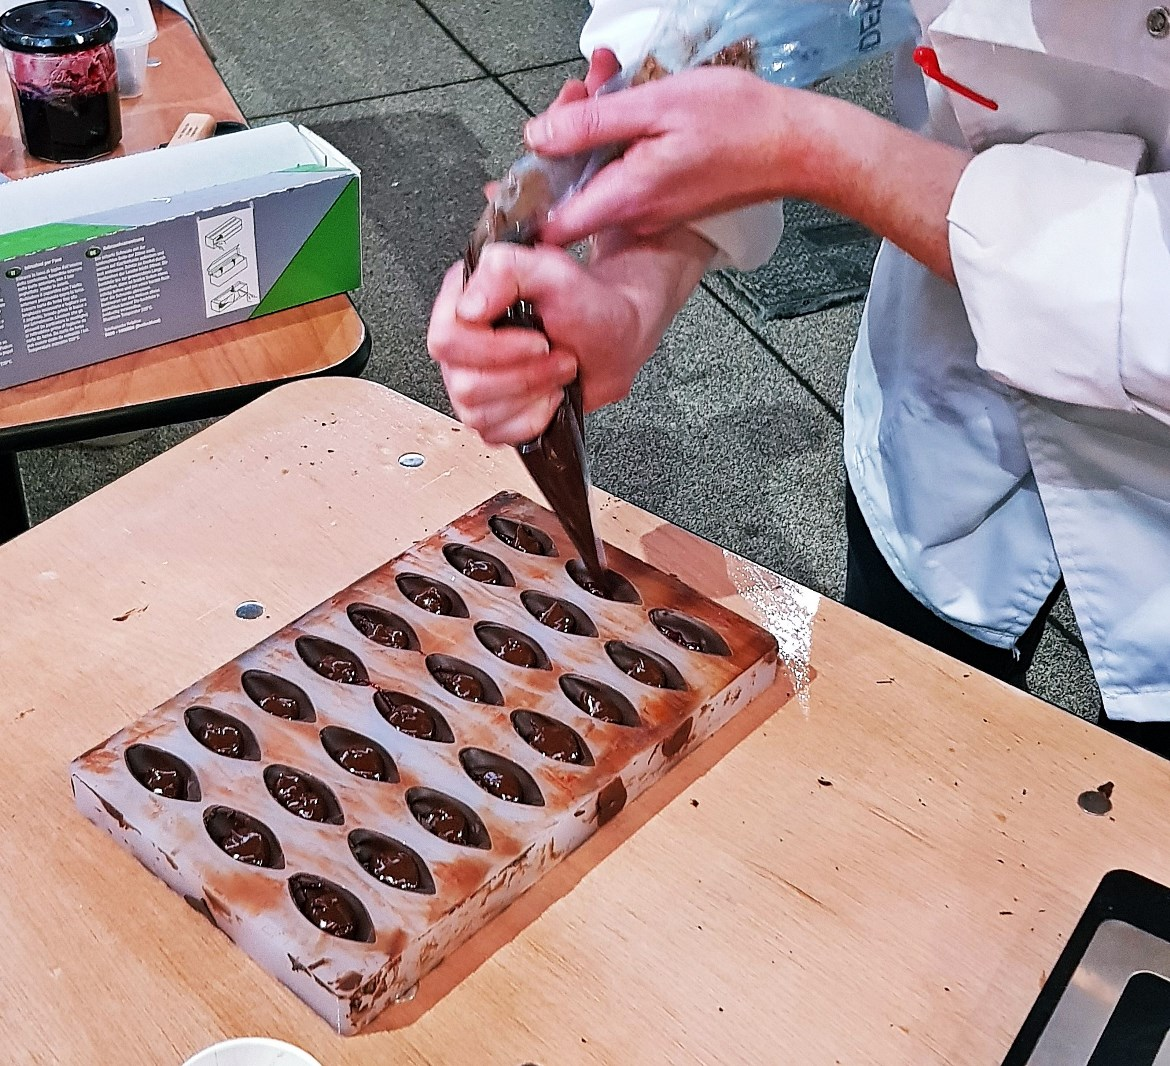 Chocolate making with Tyto Leodis, part of Leeds Indie Food Festival - May 2018 Monthly Recap by BeckyBecky Blogs